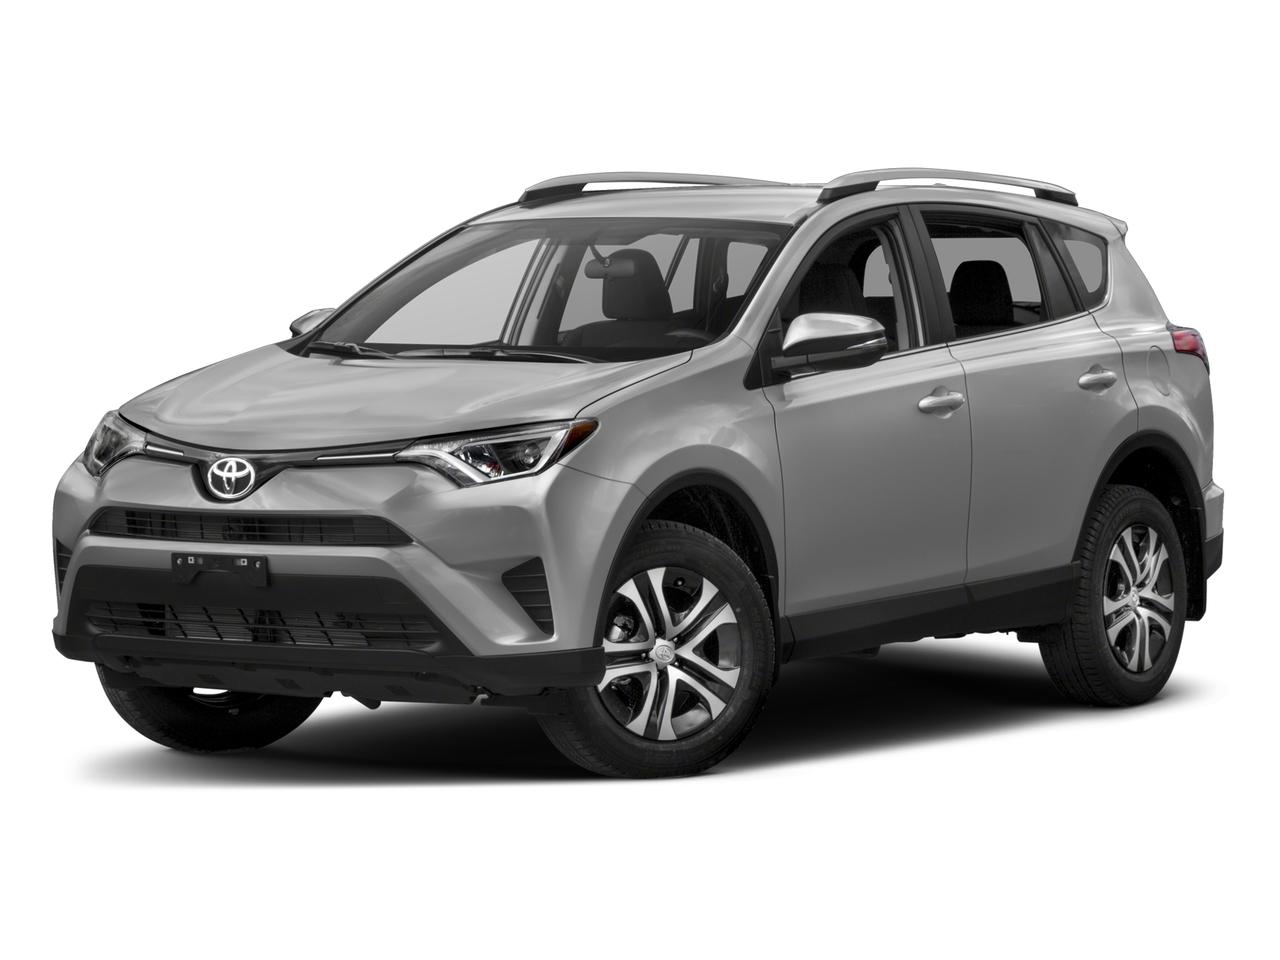 2018 Toyota RAV4 Vehicle Photo in Oak Lawn, IL 60453-2517